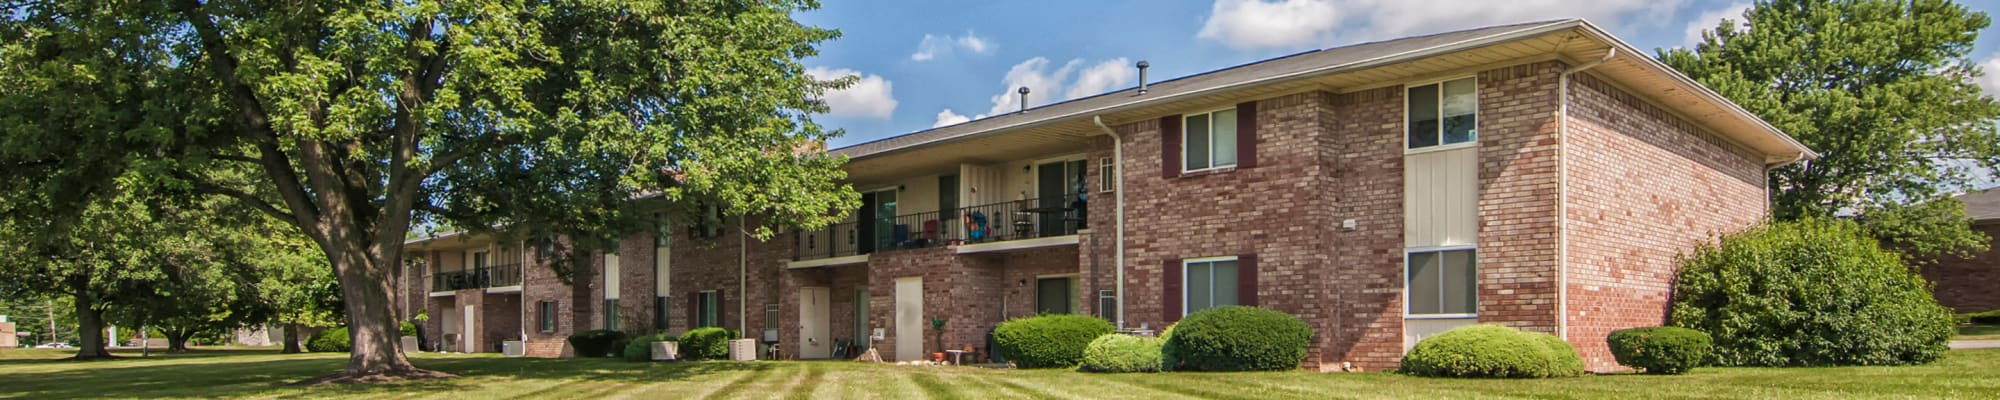 Contact Beech Meadow in Beech Grove, Indiana for more information